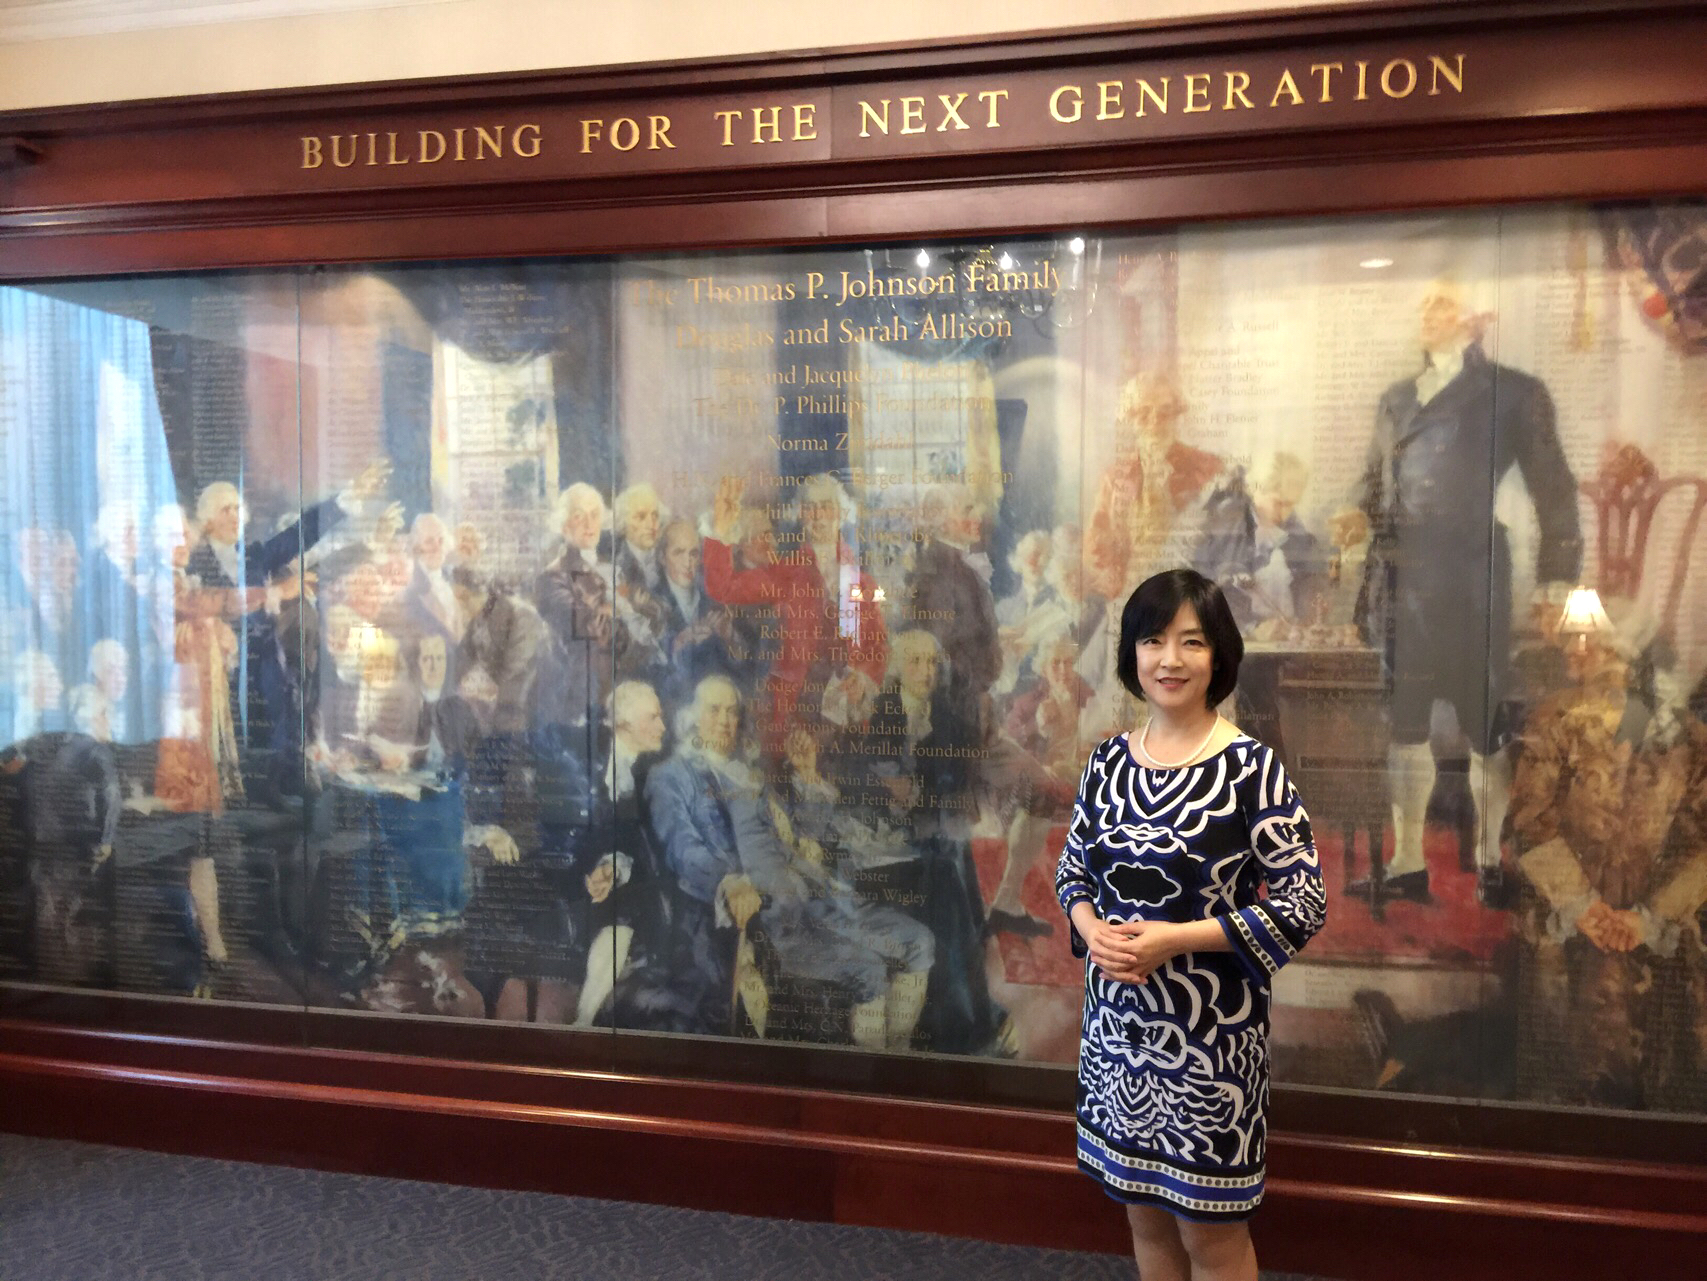 Taking a photo with the founding fathers of America after I gave a speech at the Heritage Foundation. 演講結束後,與美國建國之父們合個影。